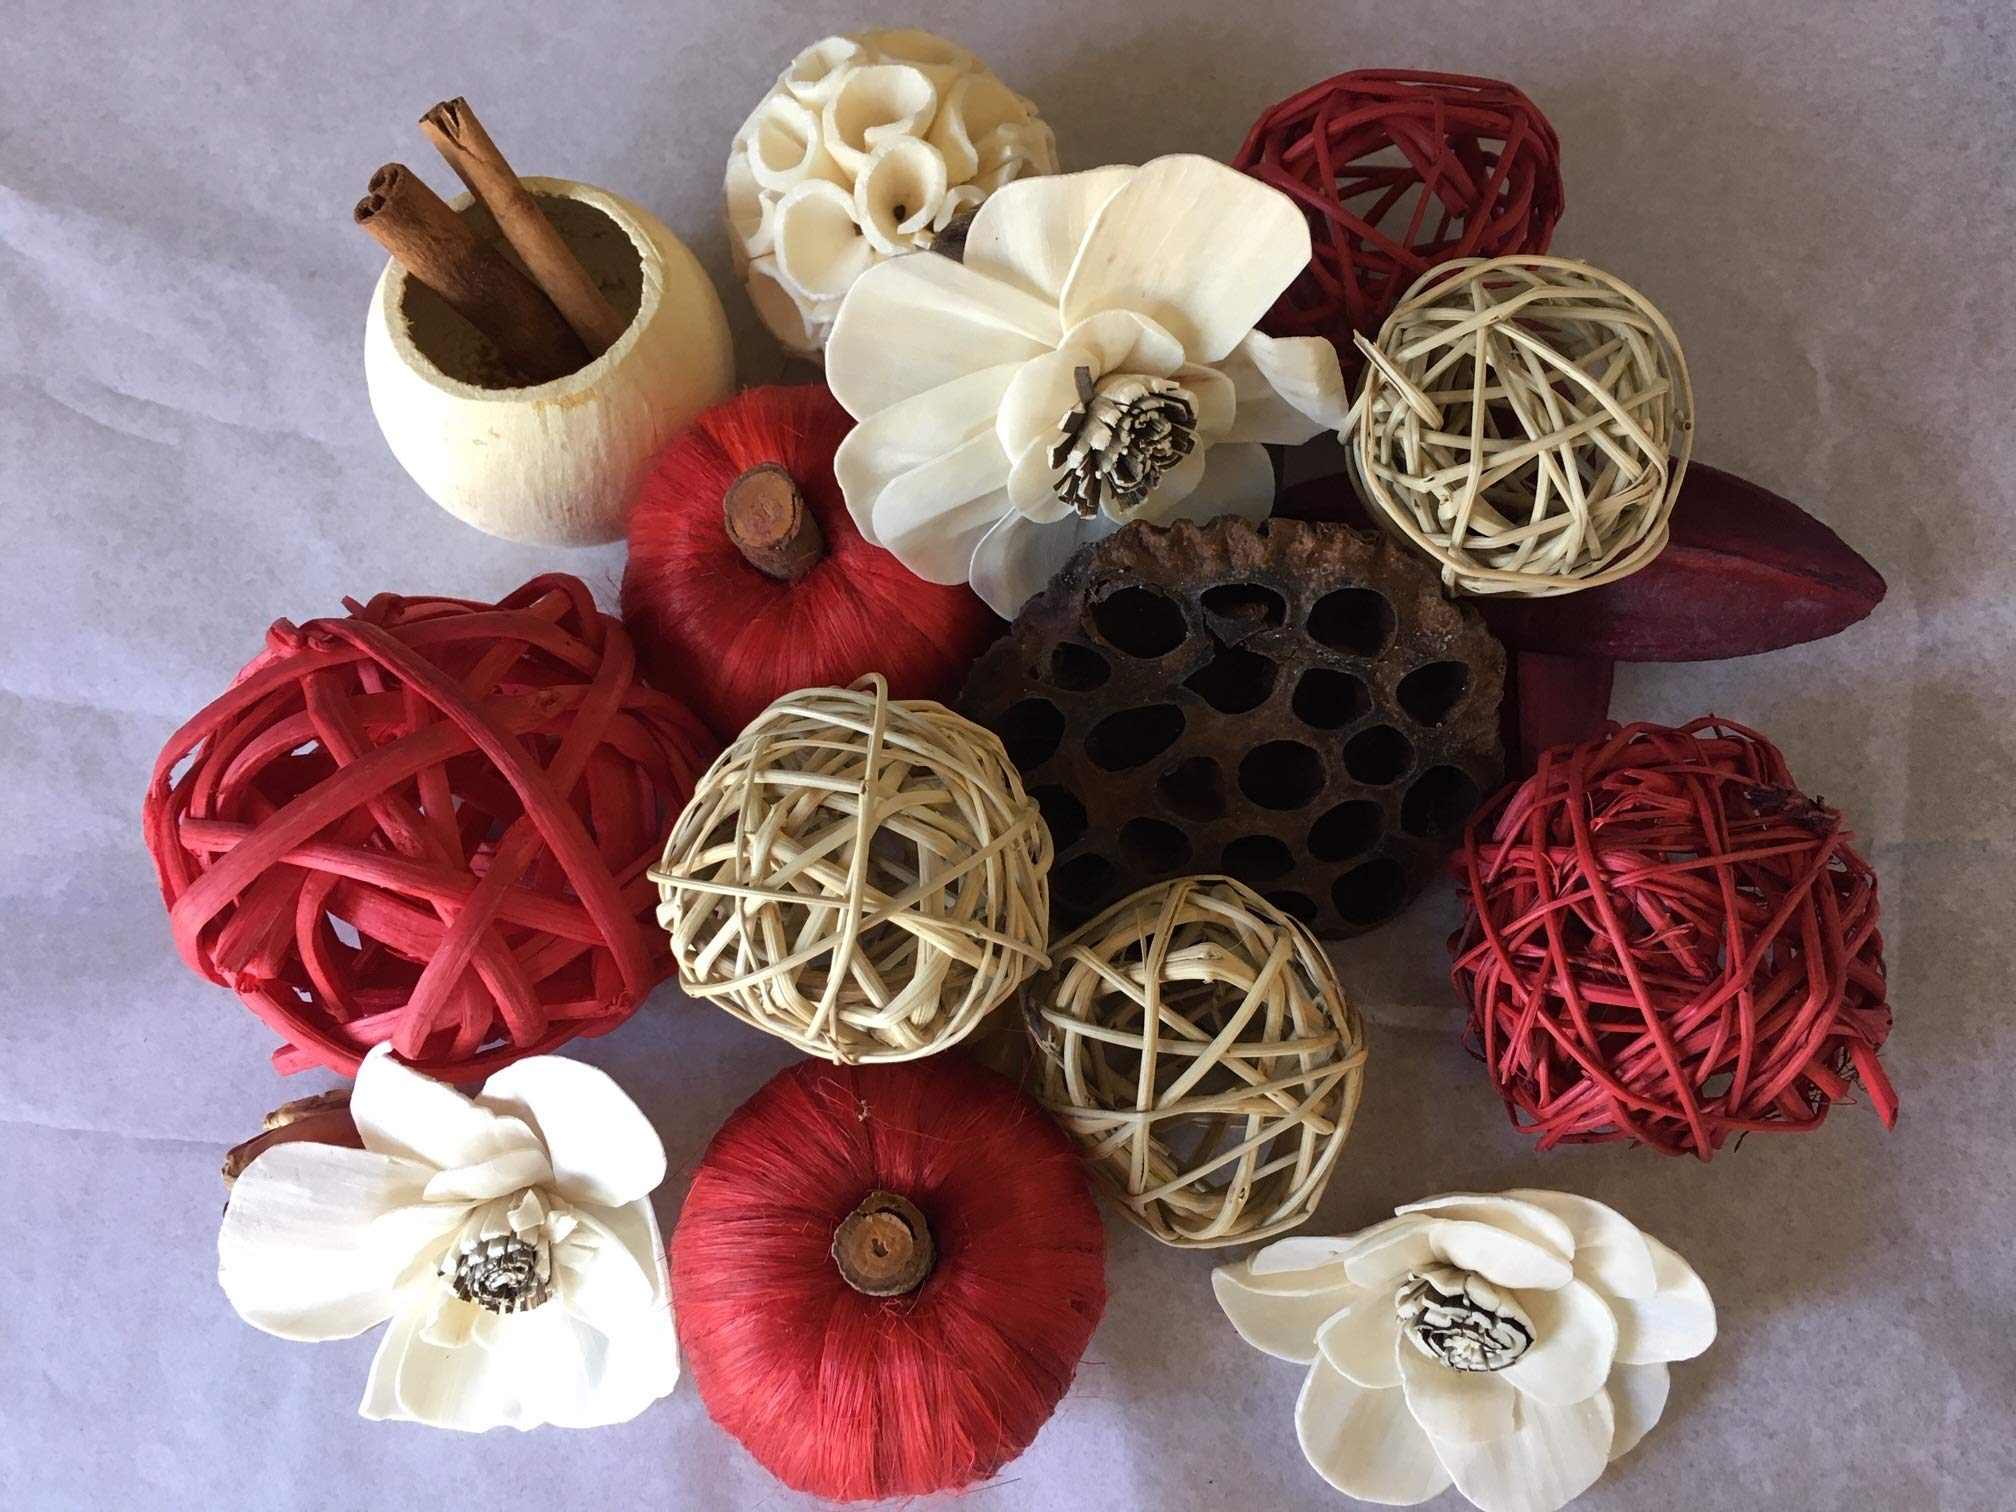 Wreaths For Door Red Rattan Decorative Spheres Natural Twig Balls and Botanical Pods Vase Or Bowl Filler Traditional to Farmhouse by Wreaths For Door